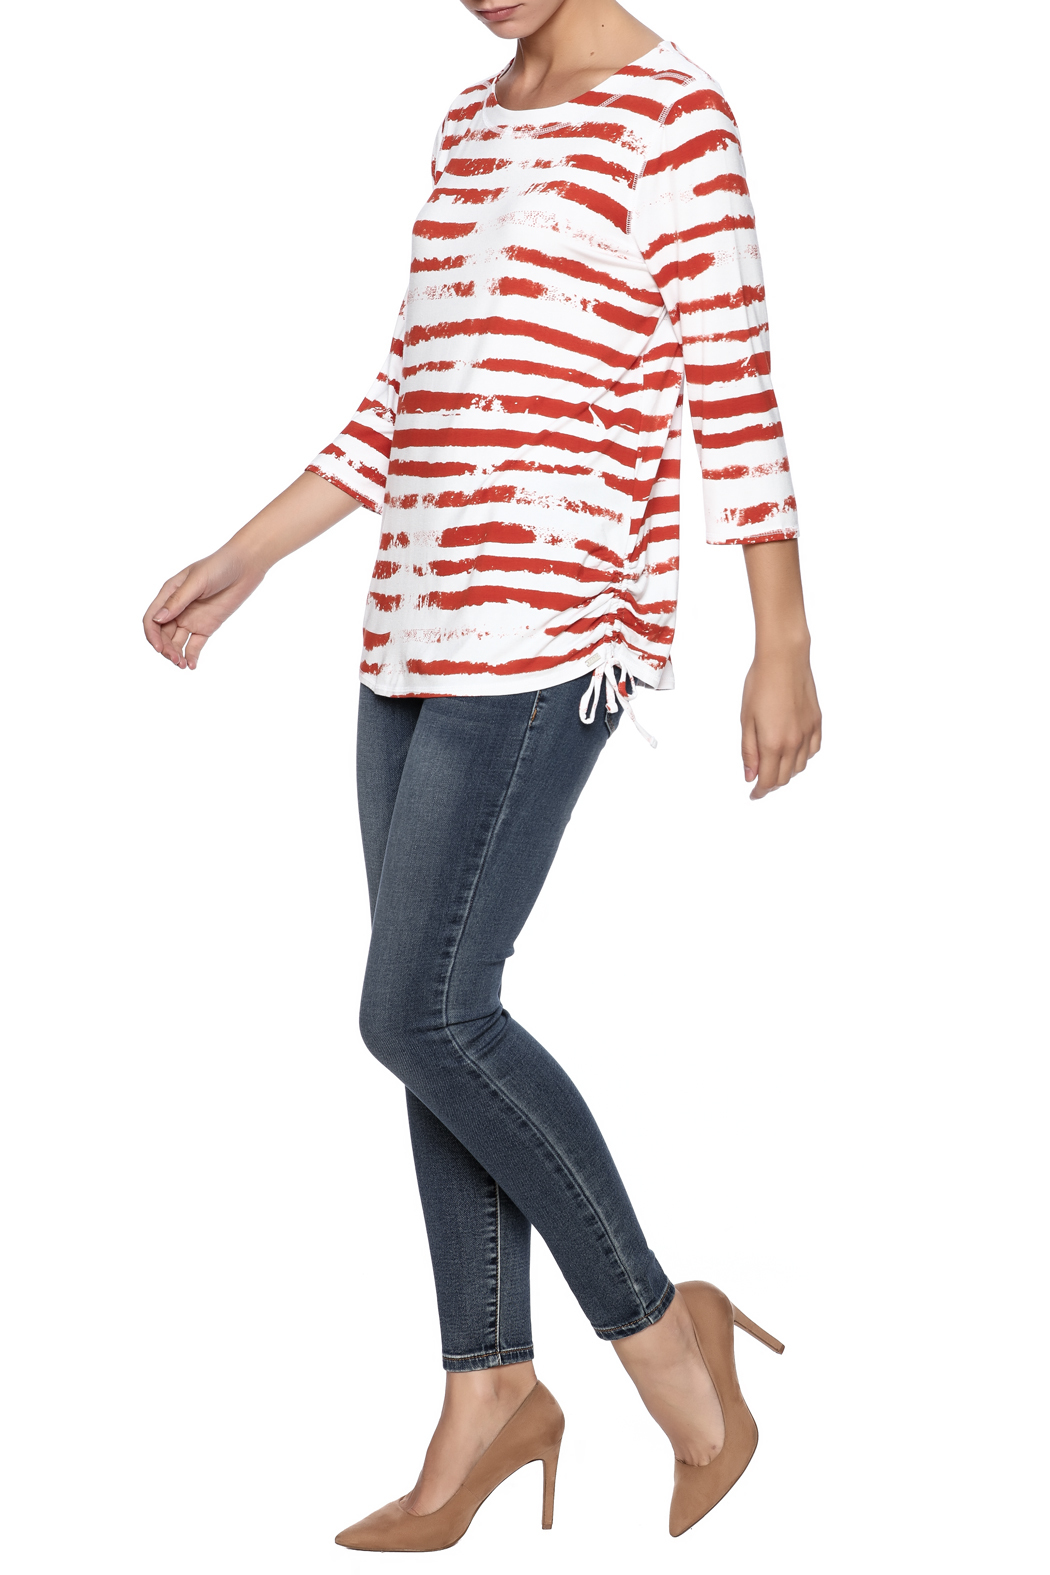 French Dressing Jeans Cloud Stripe Top - Front Full Image